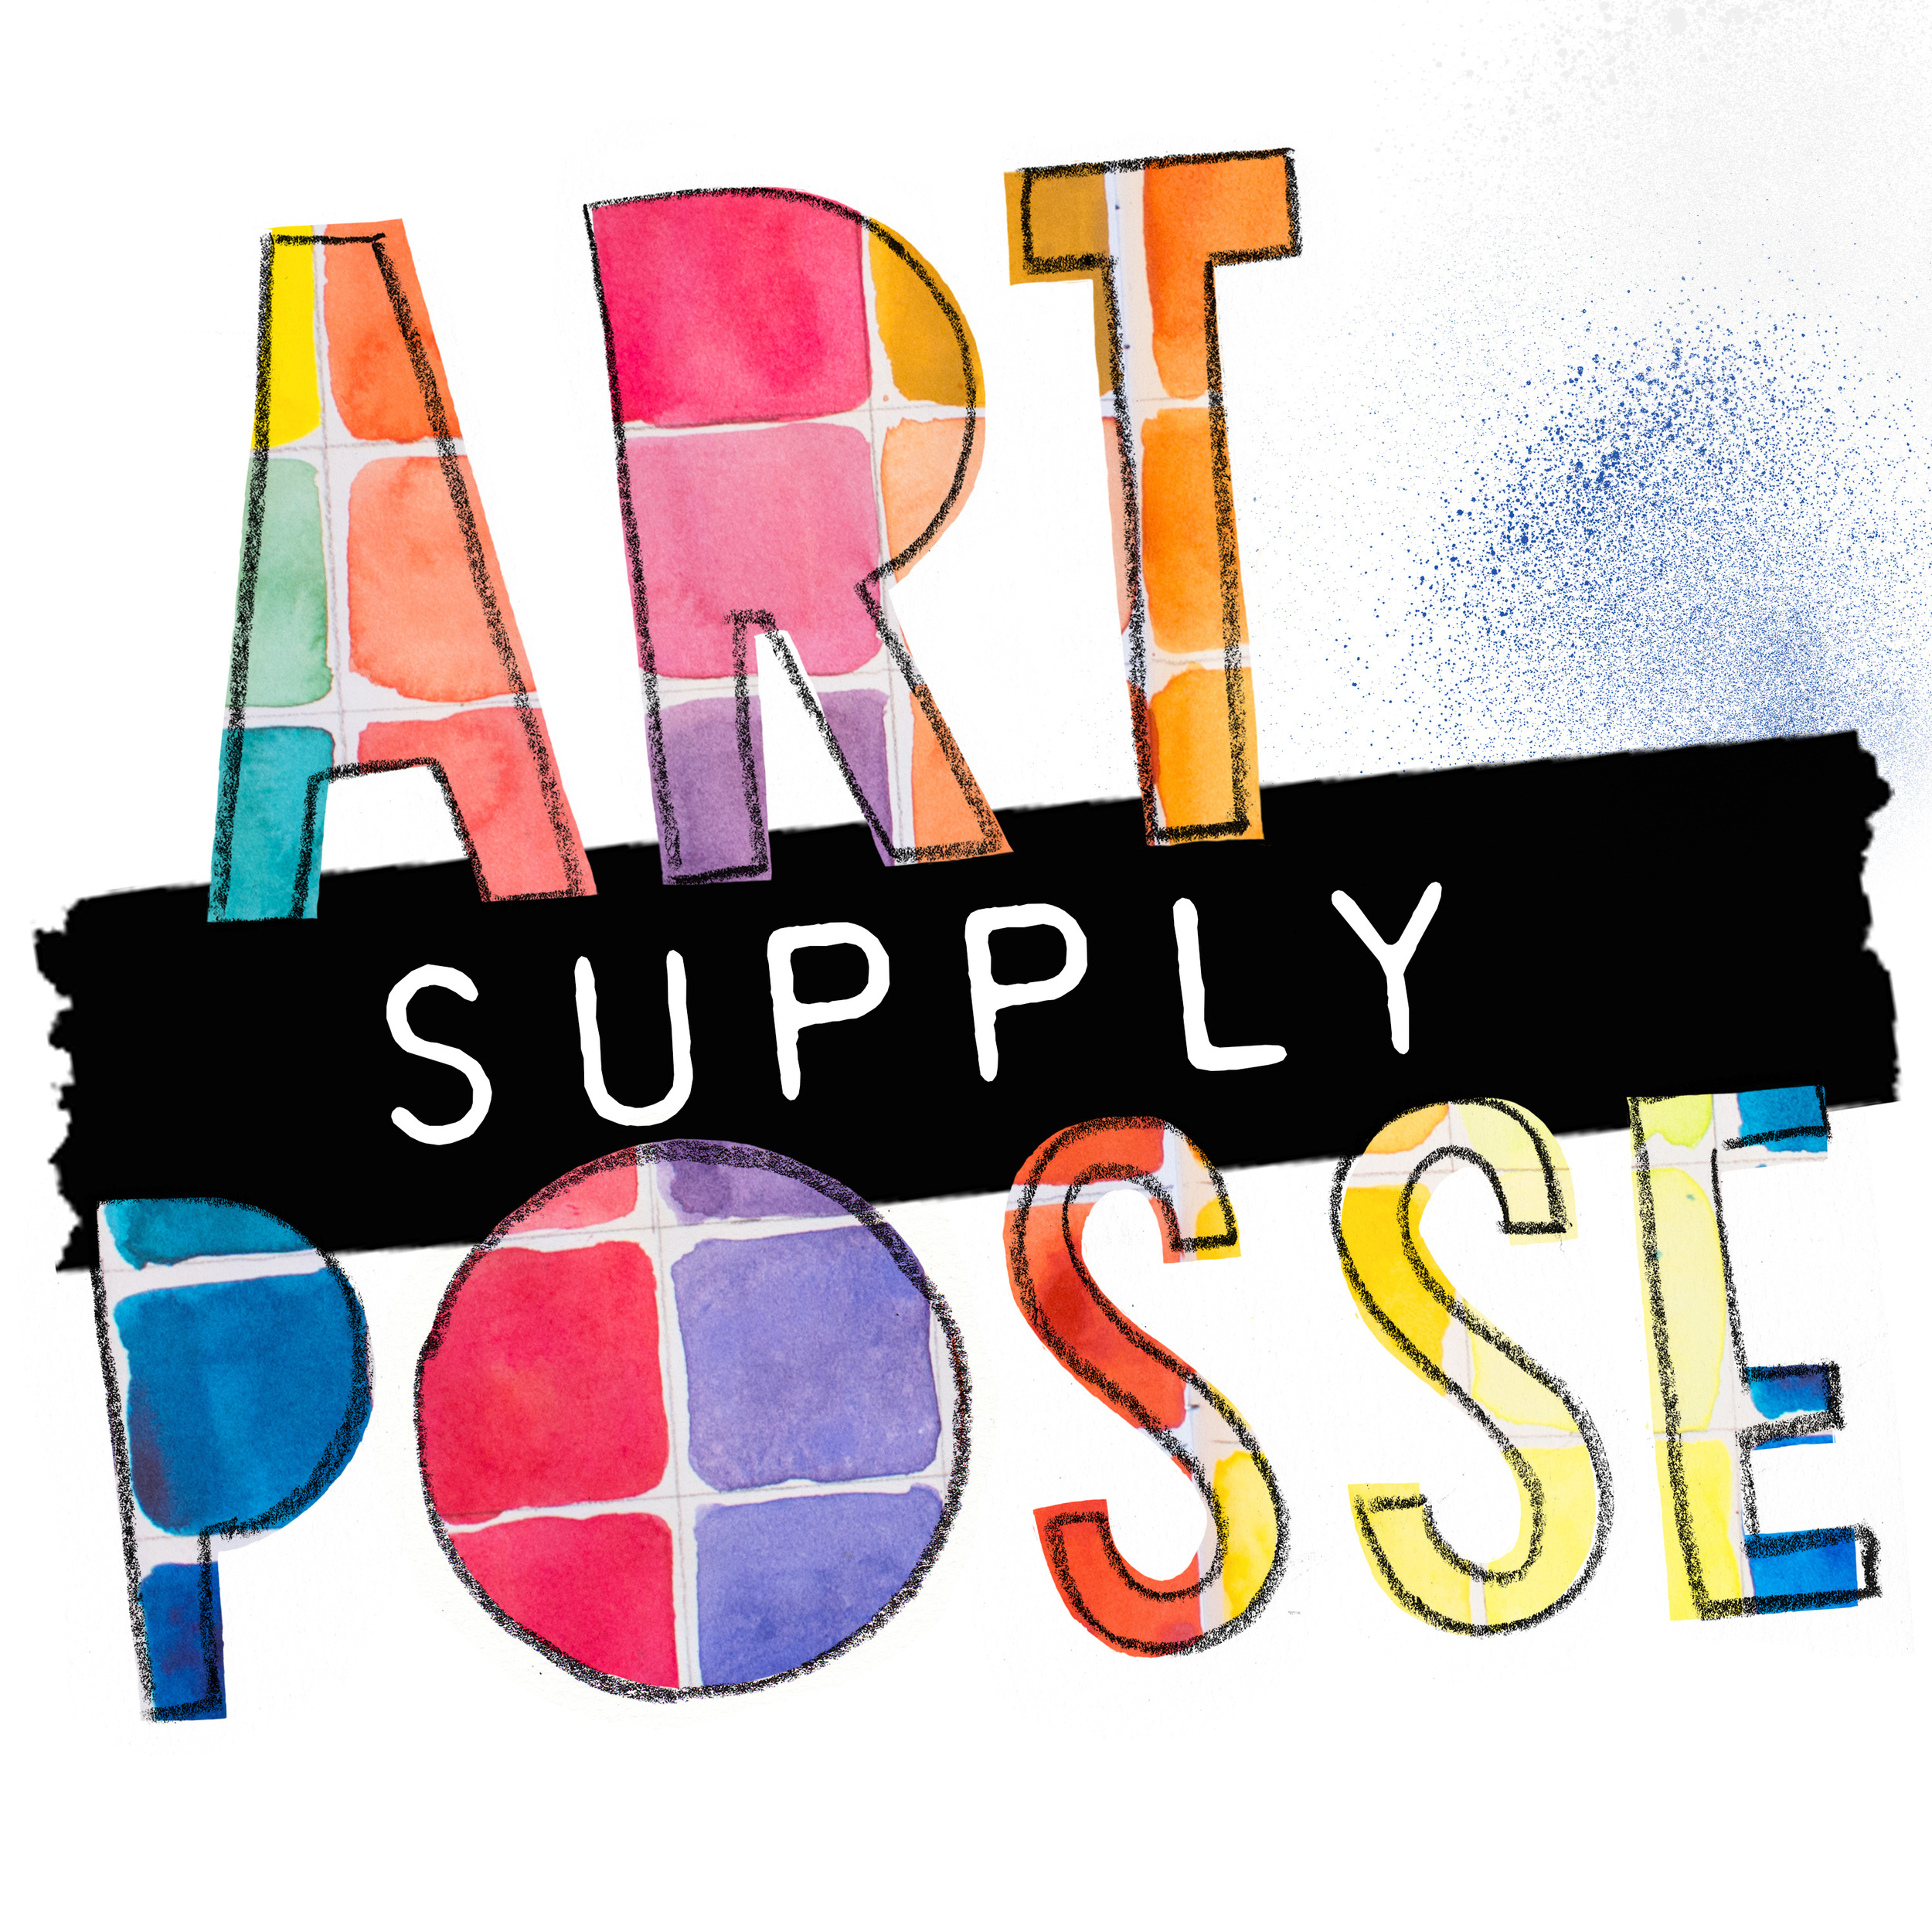 Image courtesy of Art Supply Posse